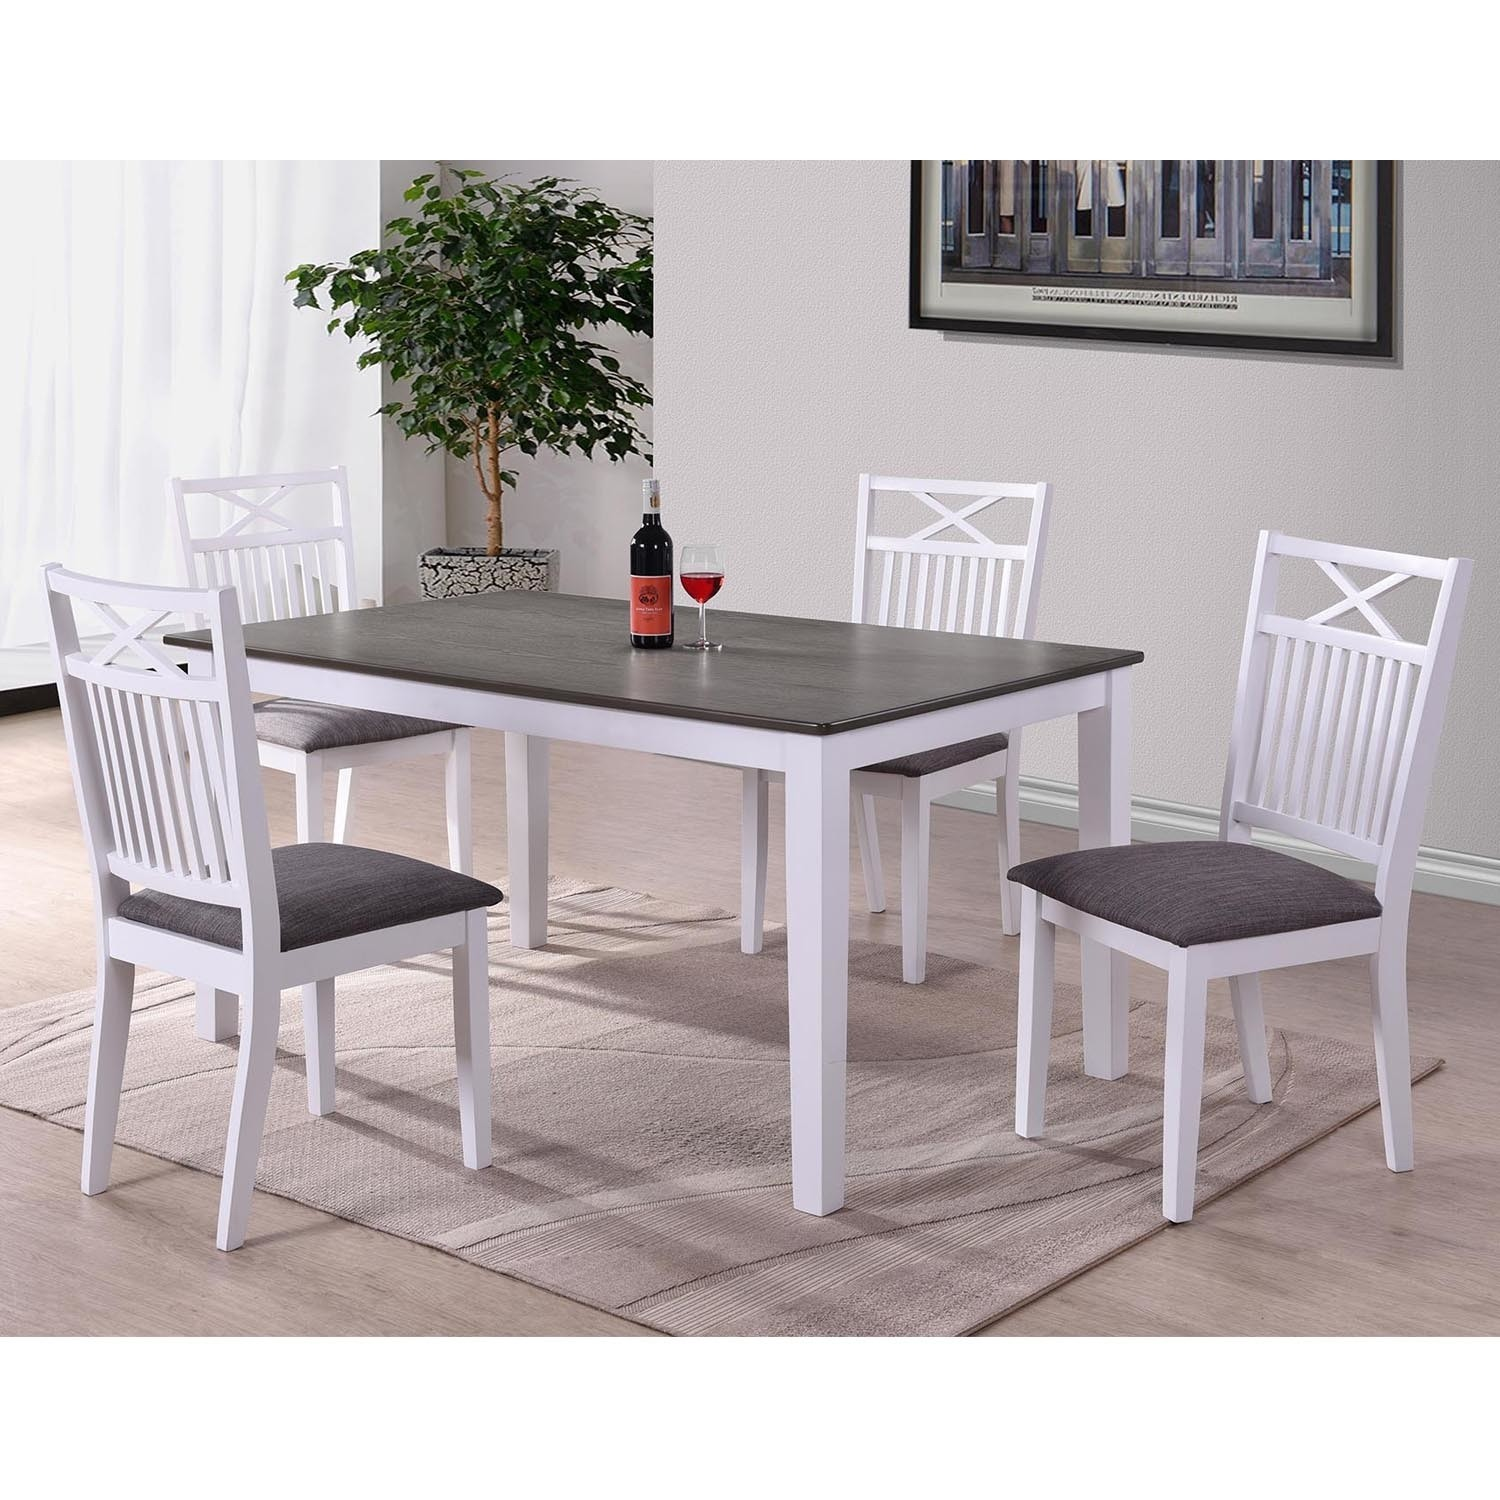 Melbourne Island Two Tone Rectangular Dining Table in White/Dark Wood  sc 1 st  Furniture 123 & Melbourne Island Two Tone Rectangular Dining Table in White/Dark ...